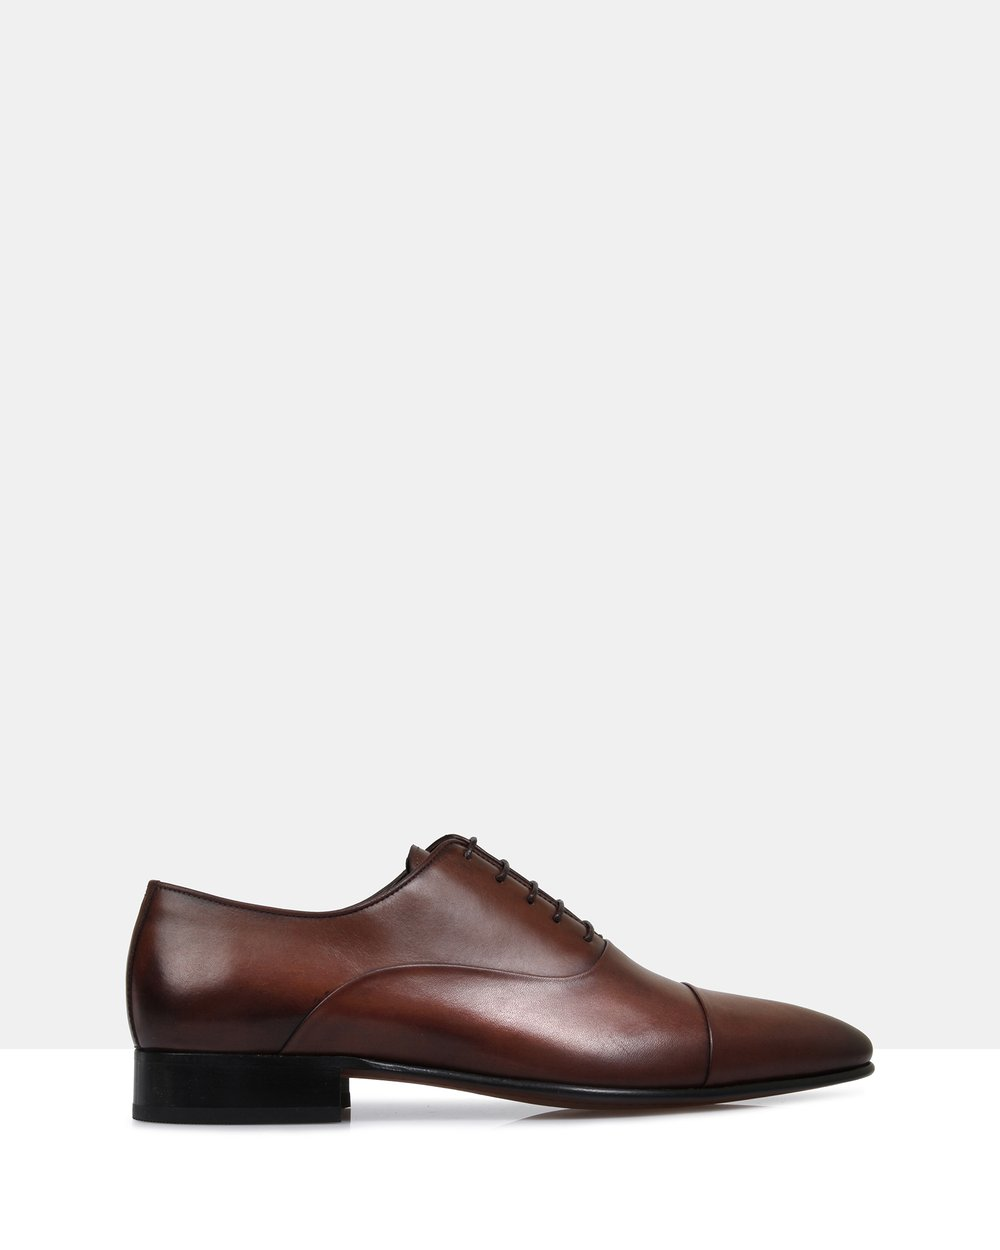 7b3aad7fcab Austin Leather Oxford Shoes by Brando Online